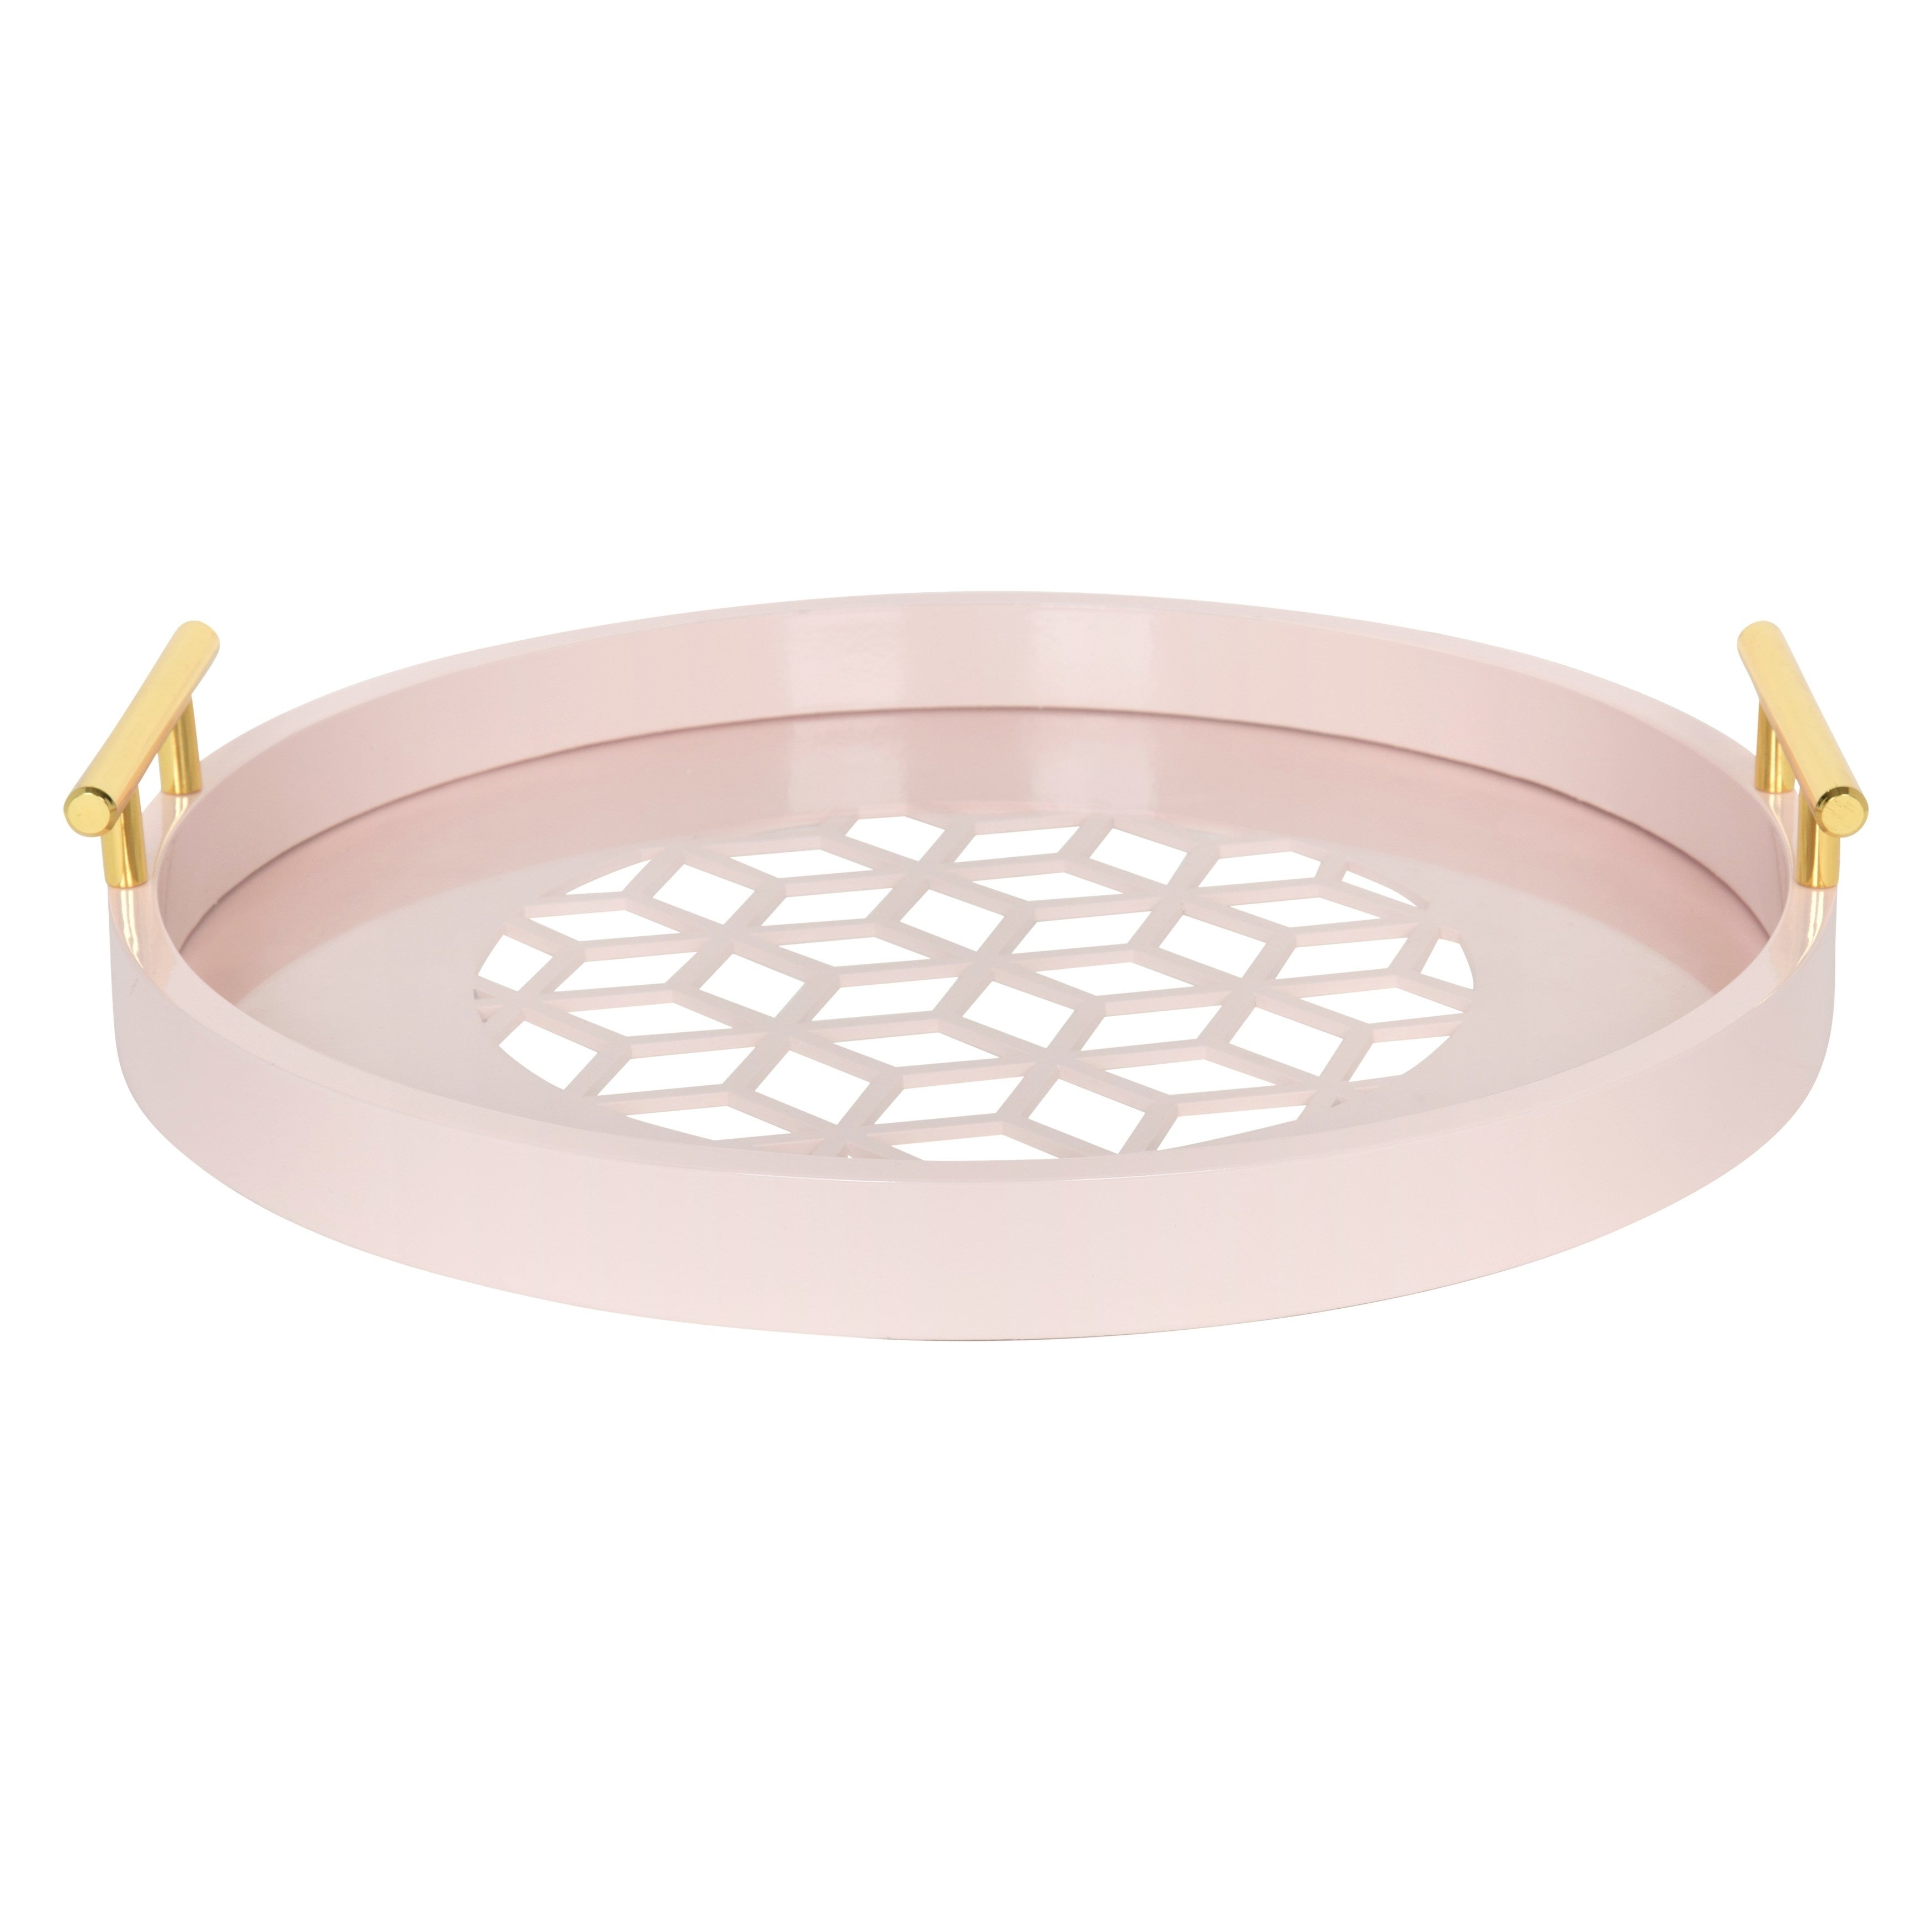 6b3966c5ae Shop Kate and Laurel Caspen Round Cut-out Pattern Decorative Gold Metal Handles  Tray - Free Shipping Today - Overstock - 14636500